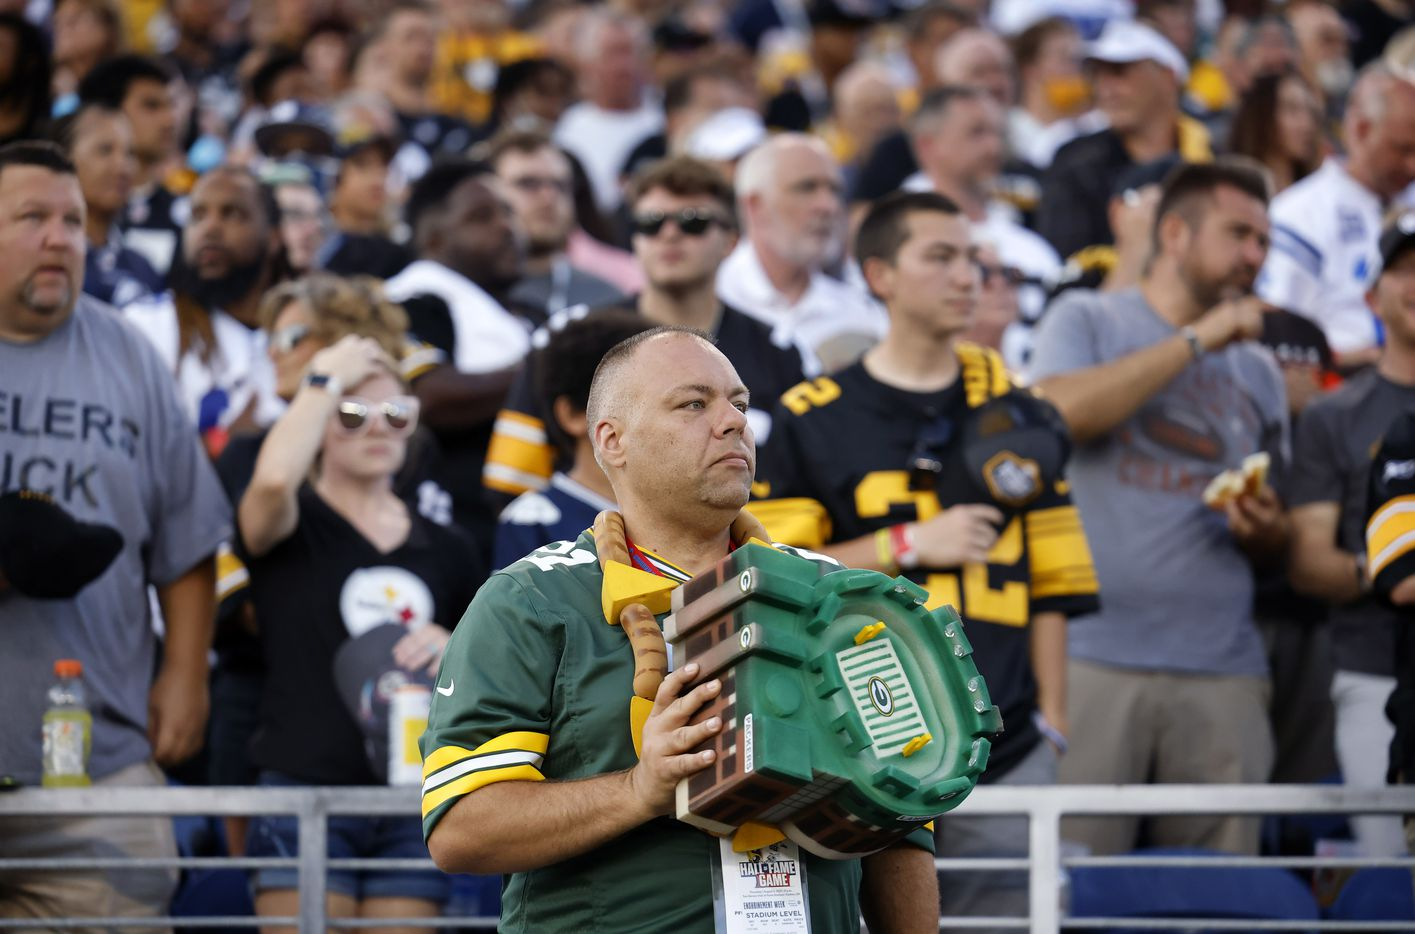 A Green Bay Packers fan holds his Lambeau Field hat over his heart during the playing of the national anthem before the Cowboys-Steelers preseason game at Tom Benson Hall of Fame Stadium in Canton, Ohio, Thursday, August 5, 2021. (Tom Fox/The Dallas Morning News)